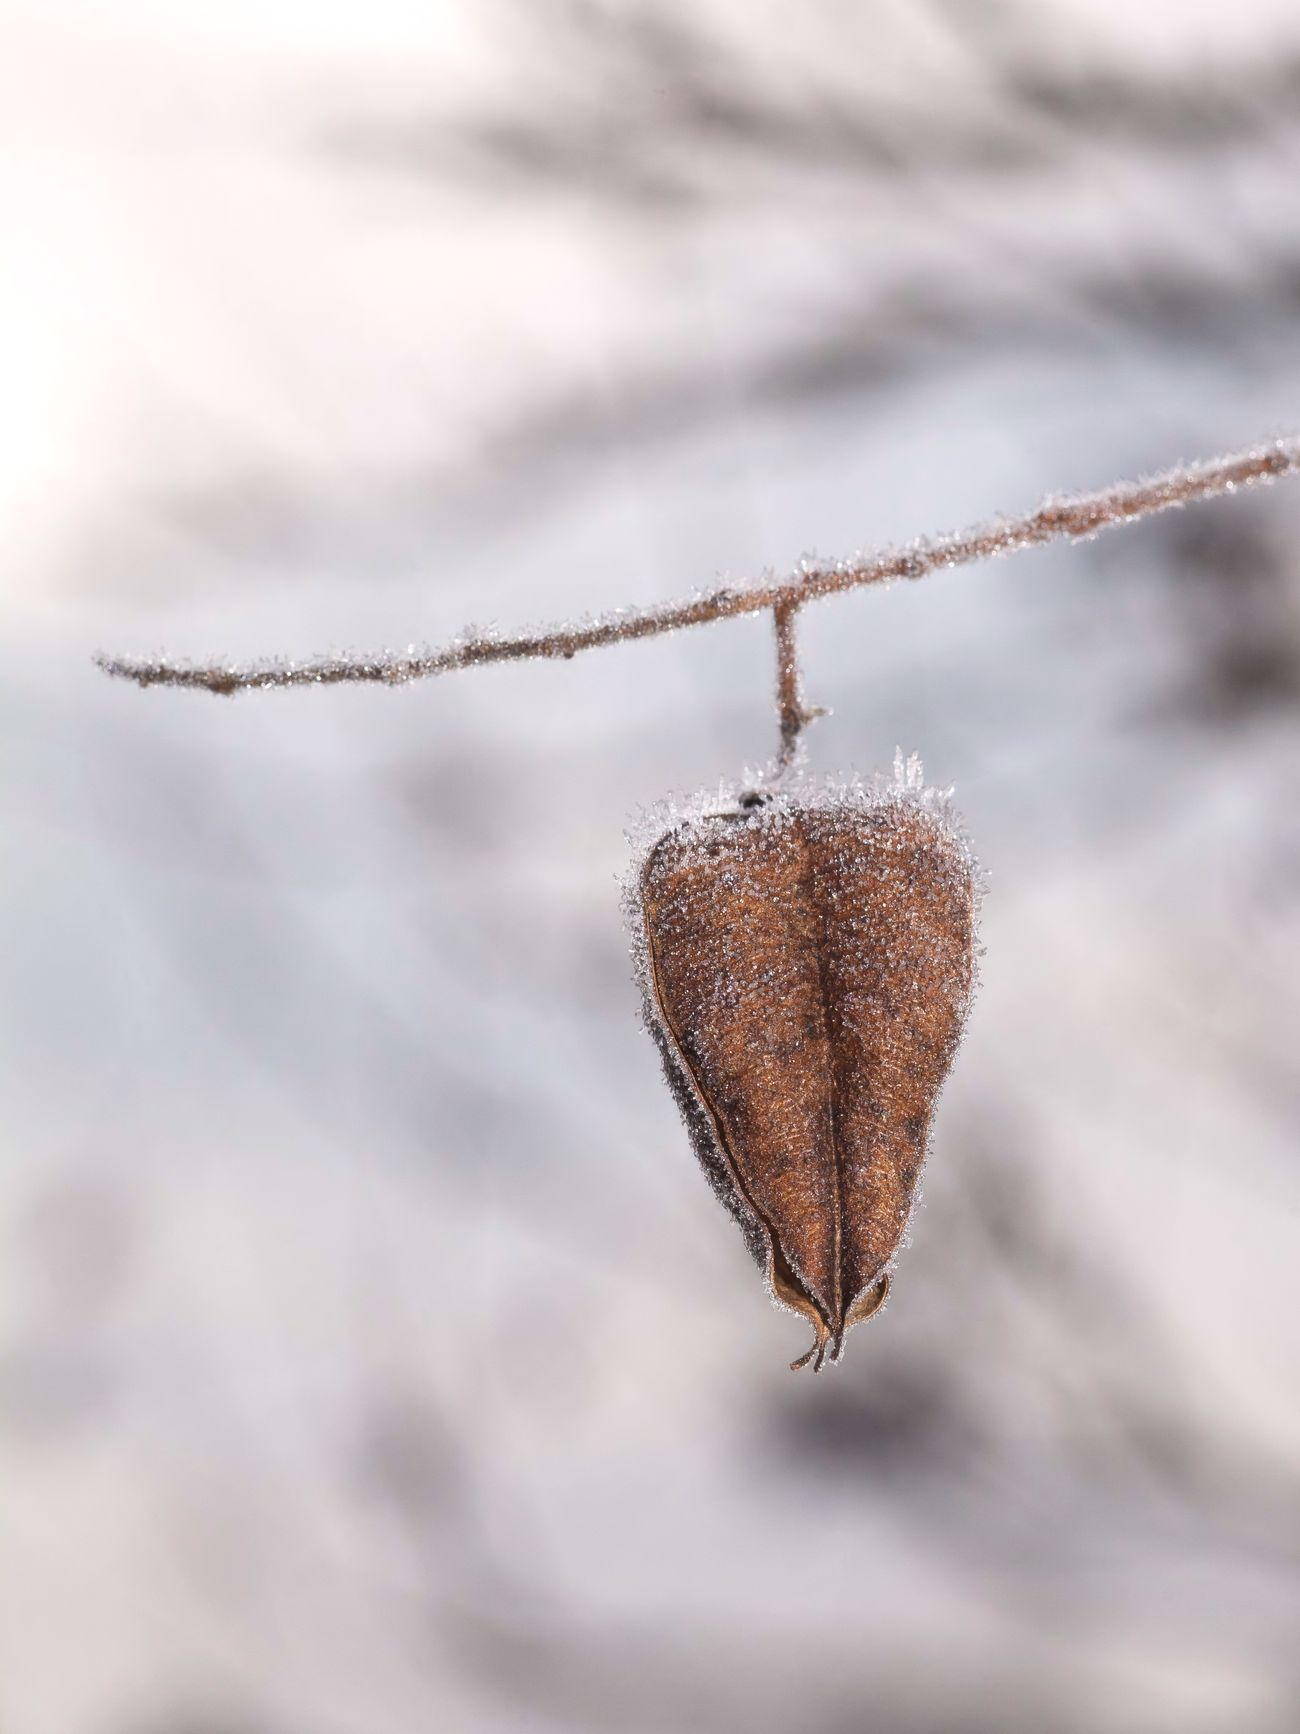 Frozen Heart ❤ I wish you a wonderful start in the week. Winter Close Up Nature Nature_collection Nature On Your Doorstep Purity Lieblingsteil Miles Away Full Frame Canon I LOVE PHOTOGRAPHY 3XSPUnity Germany Fall Beauty Simple Quiet Love EyeEm Gallery Tranquility EyeEm Nature Lover EyeEm Macro Macro Showcase: February Plants And Flowers TreePorn Tranquil Scene Nature's Diversities